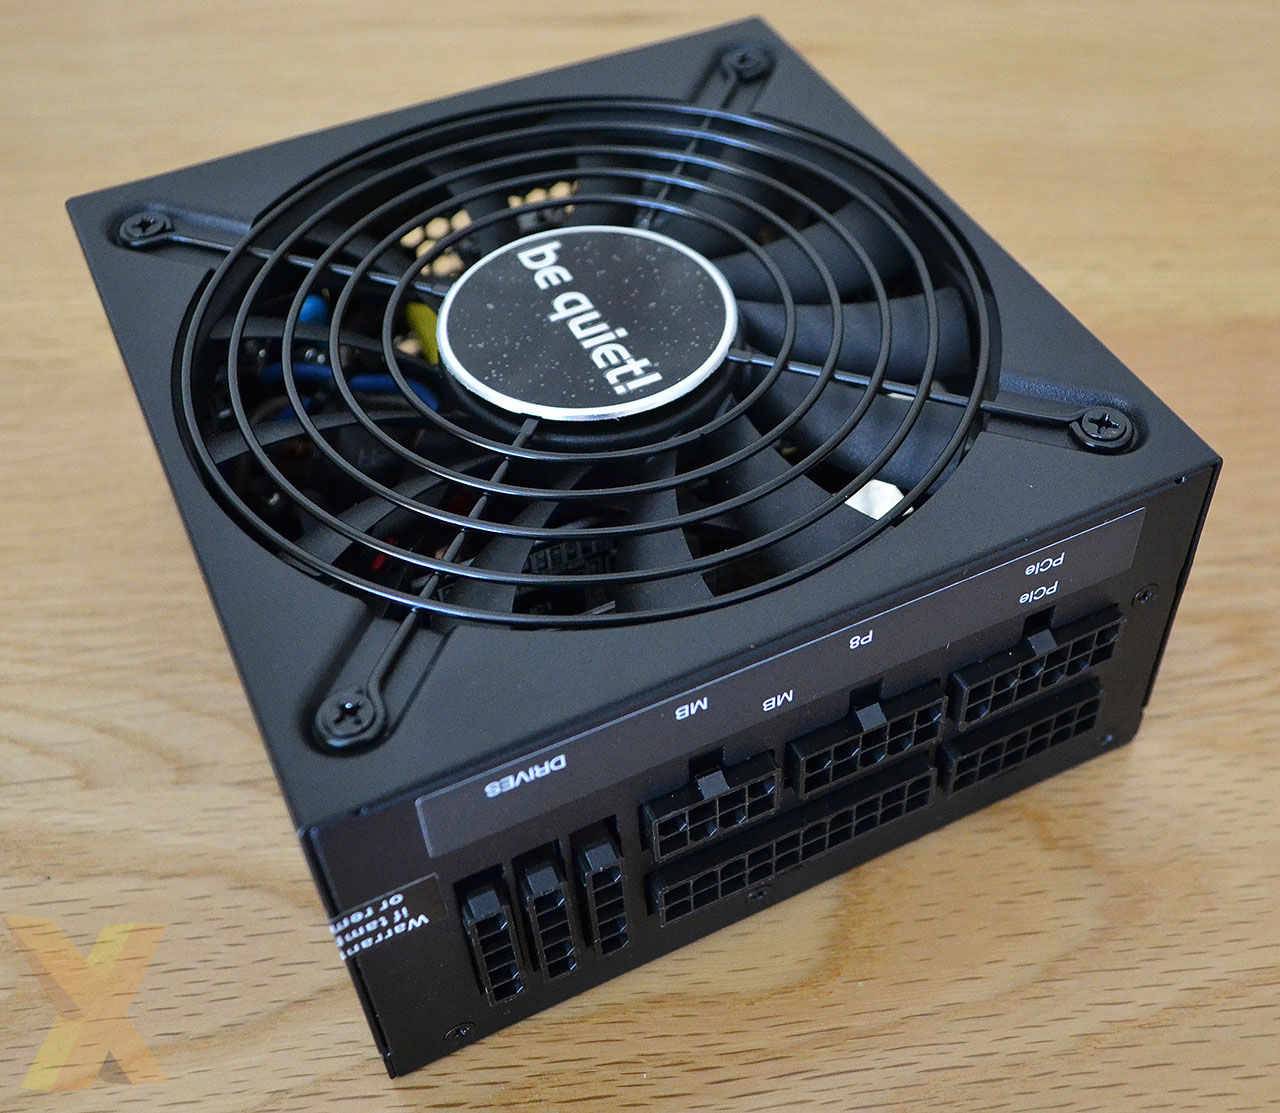 Review Be Quiet Sfx L Power 600w Psu At Supply Form Factor Has Taken On The Sff Challenge By Now Releasing A Couple Of High Performance Models 500w And Based